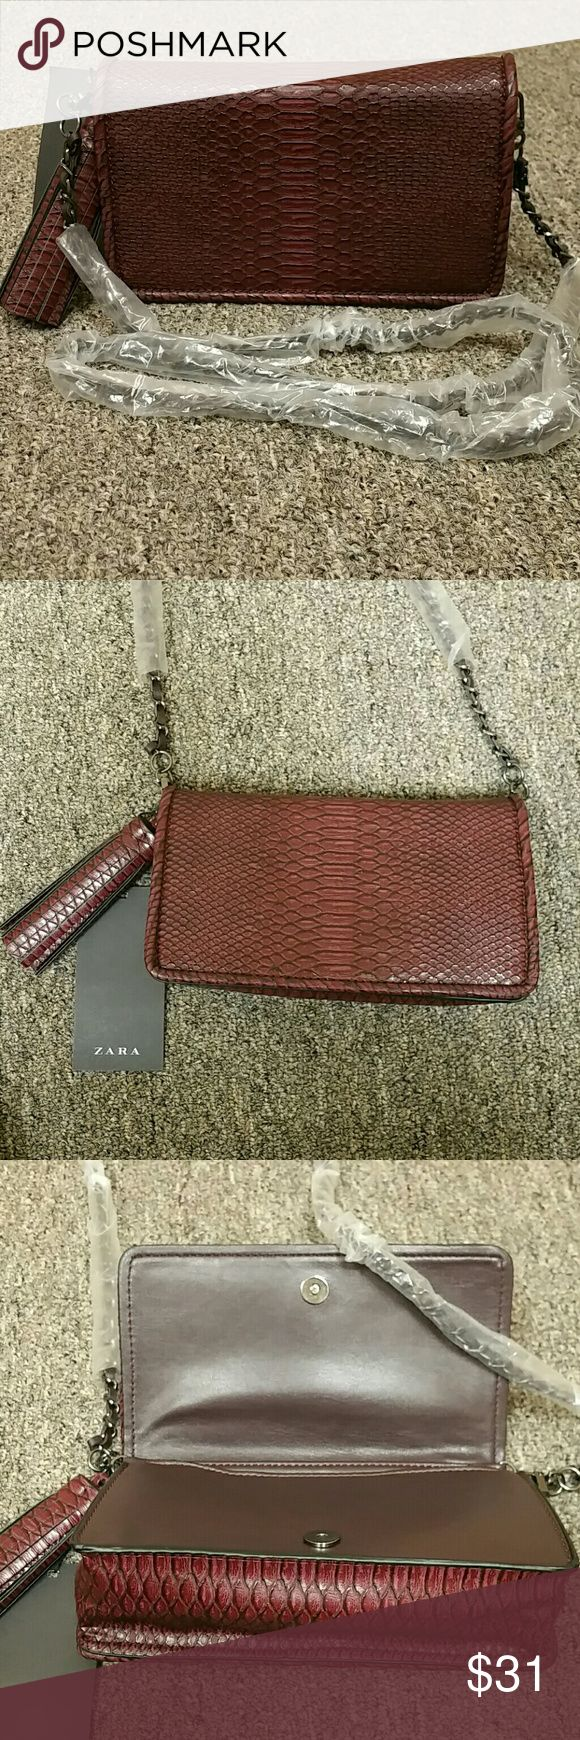 "NWT Zara faux snakeskin Crossbody/Clutch NWT Zara wine colored crossbody faux snakeskin  Approx.  4"" tassel - bag - 8"" X 4.5"" / 3 3/4"" depth  Chain drops 20""  Inside has Zippered front and side pocket,  snap closure / removable chain allows to be used as a Clutch /leather is weaved through chain Zara Bags Crossbody Bags"